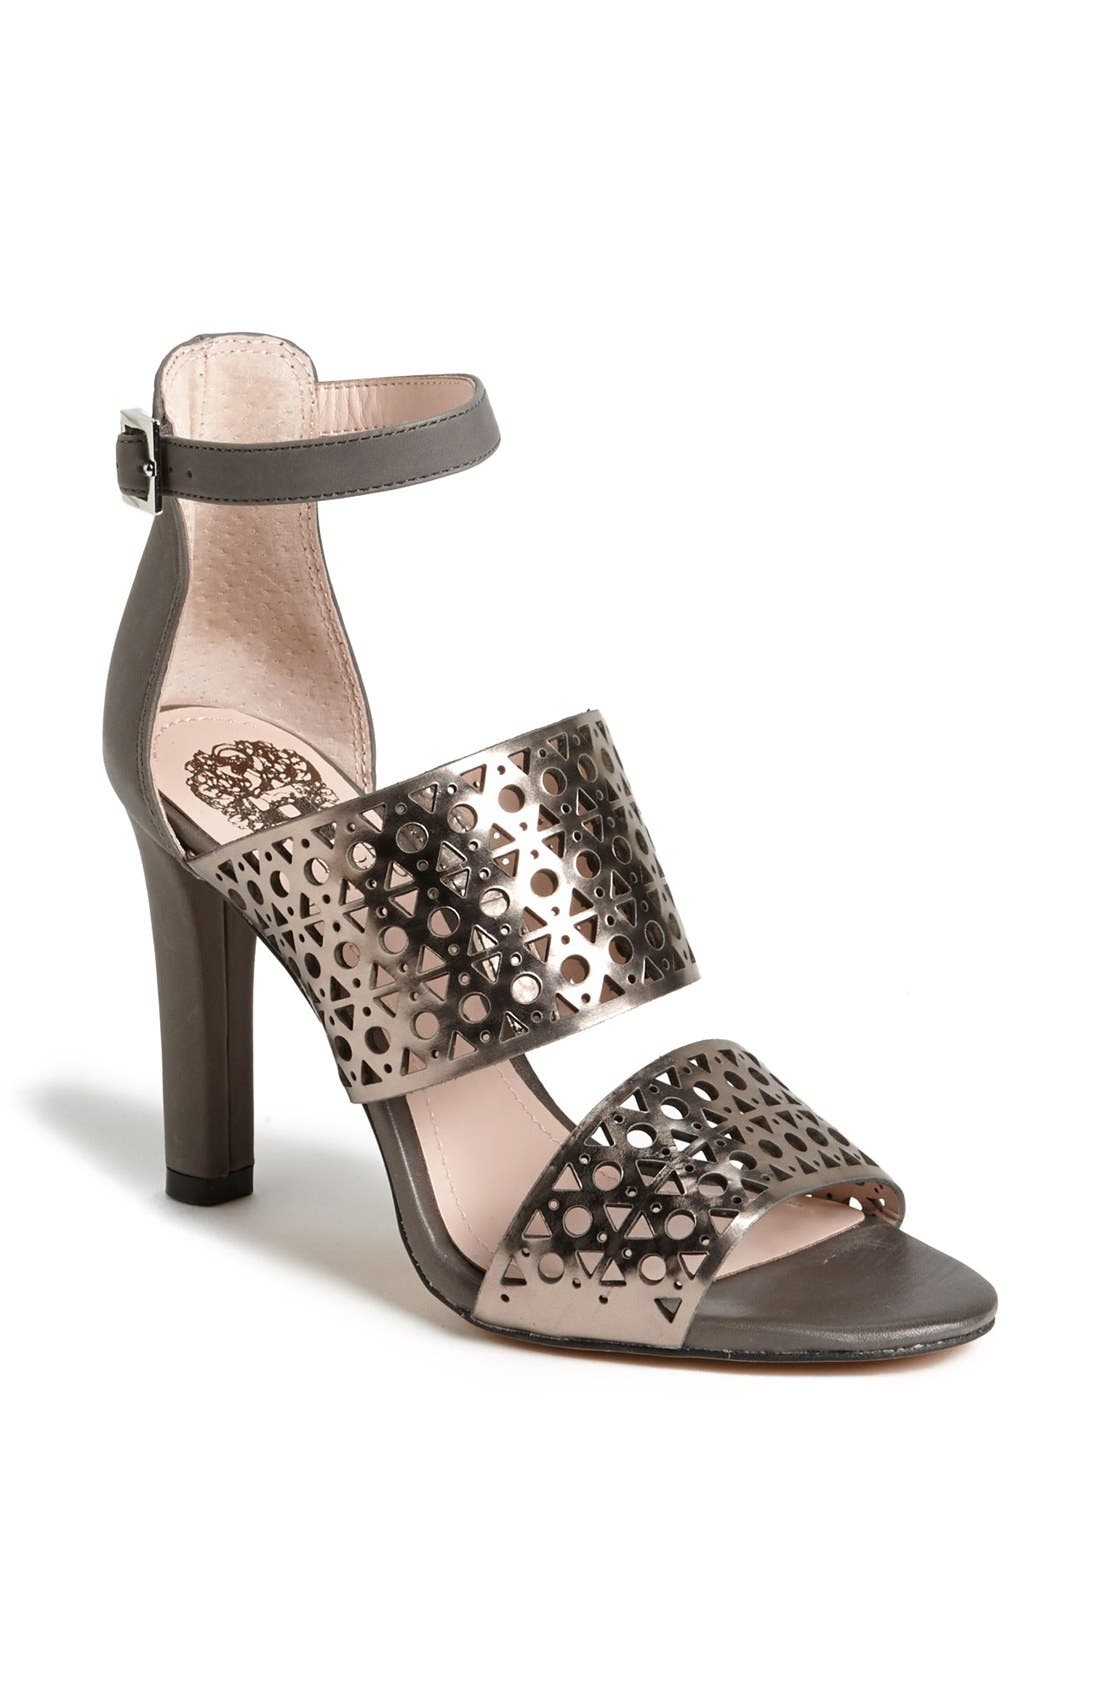 Main Image - Vince Camuto 'Okeli' Perforated Ankle Strap Sandal